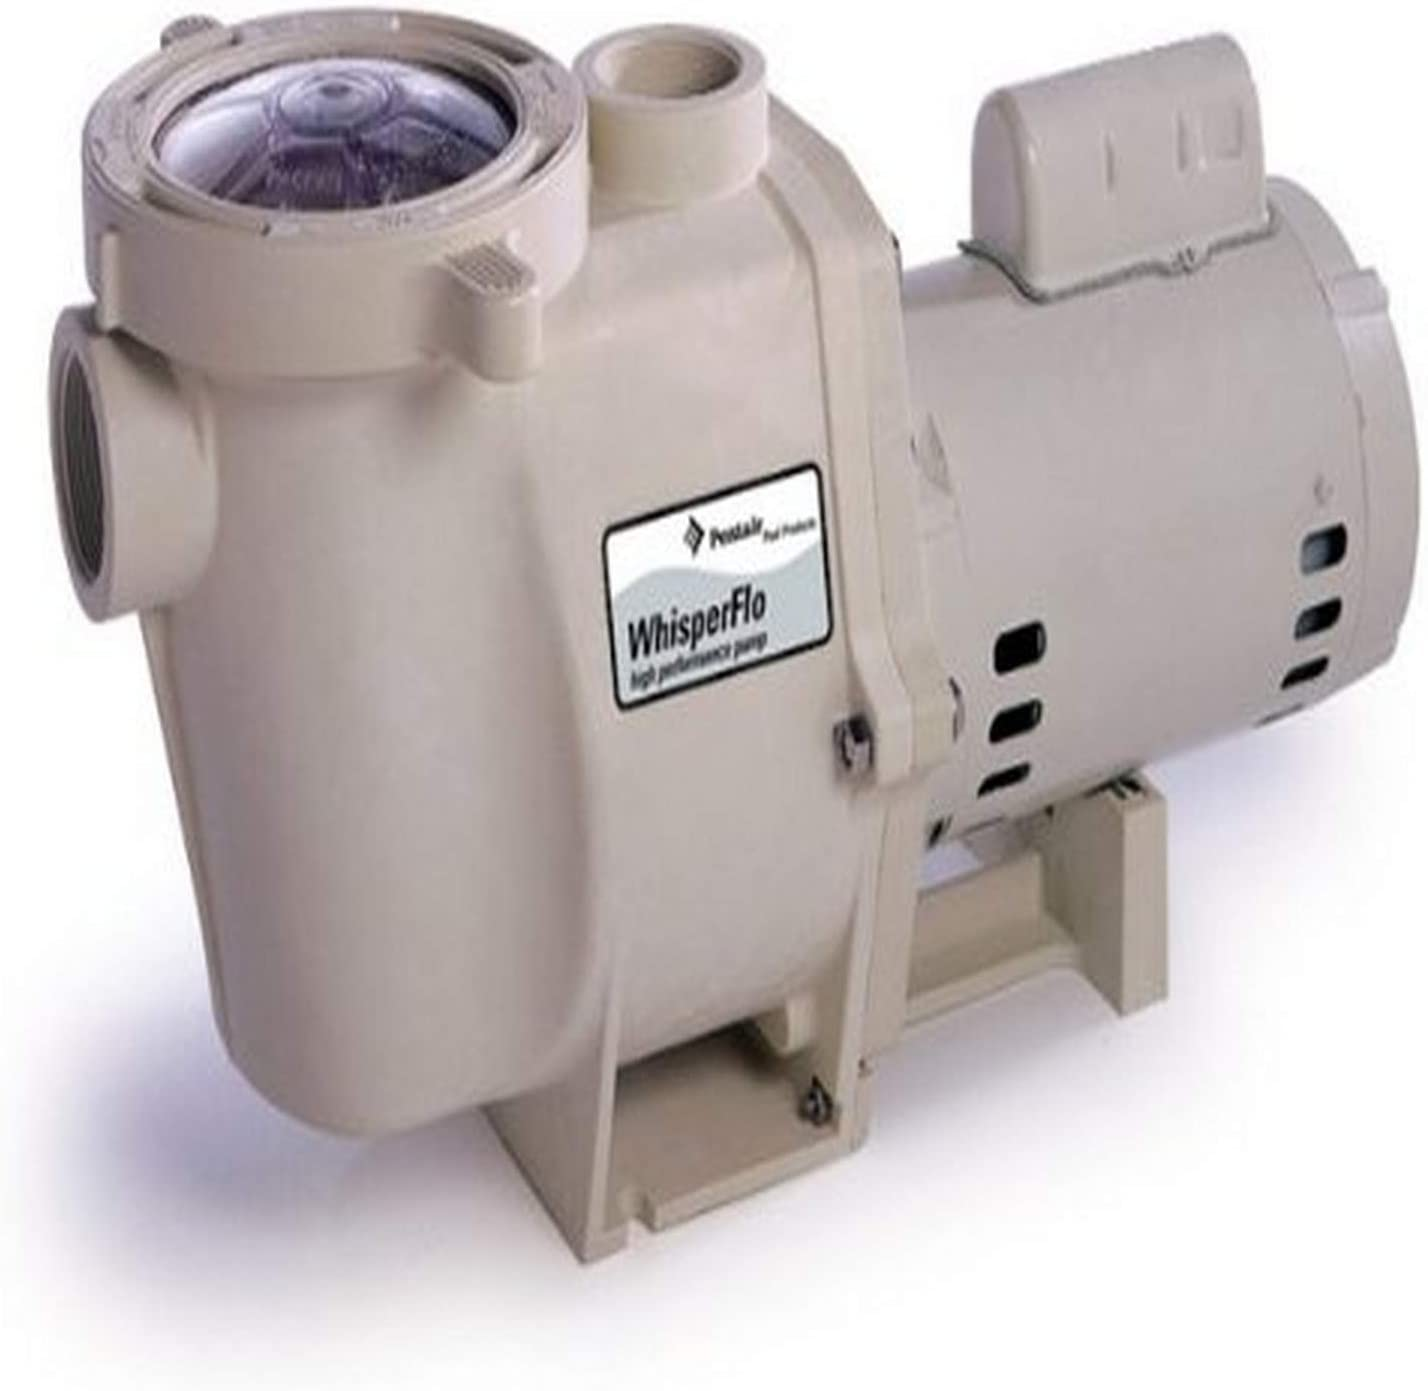 Pentair 011578 WhisperFlo High Performance Standard Efficiency Single Speed Full Rated Pump, 1/2 Horsepower, 115/230 Volt, 1 Phase